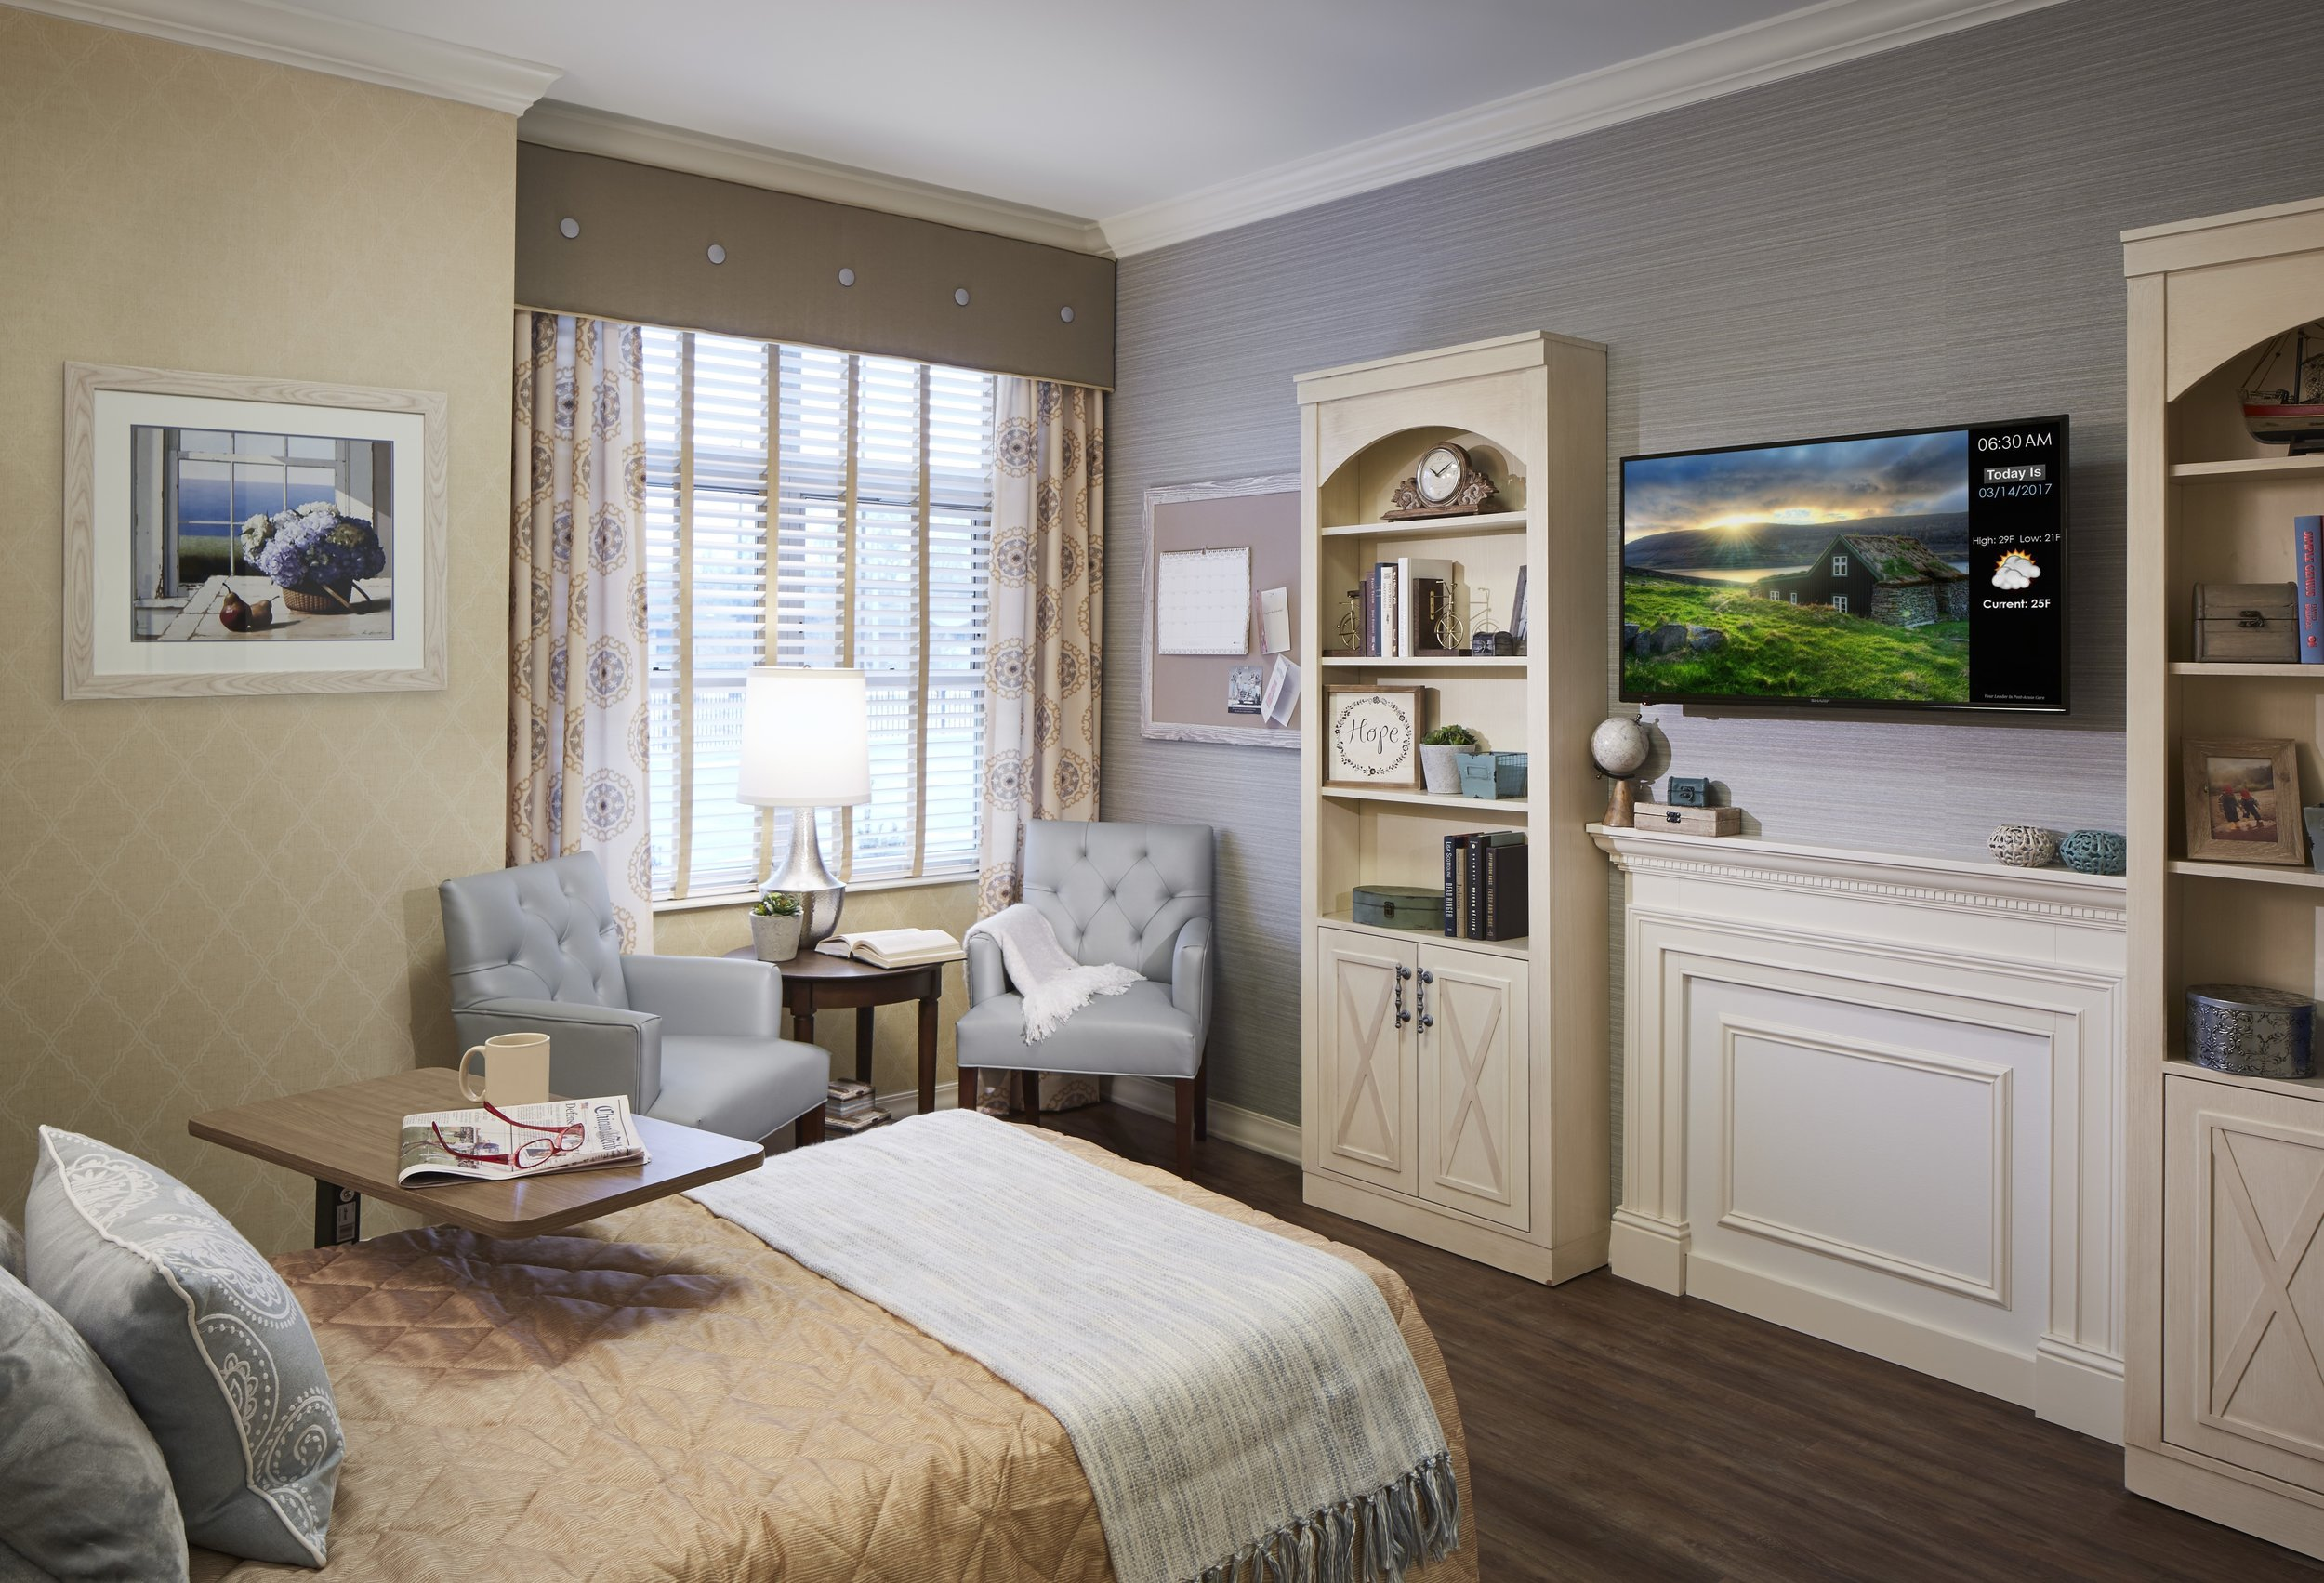 Courts of Shorewood Private Resident Room-1.jpg